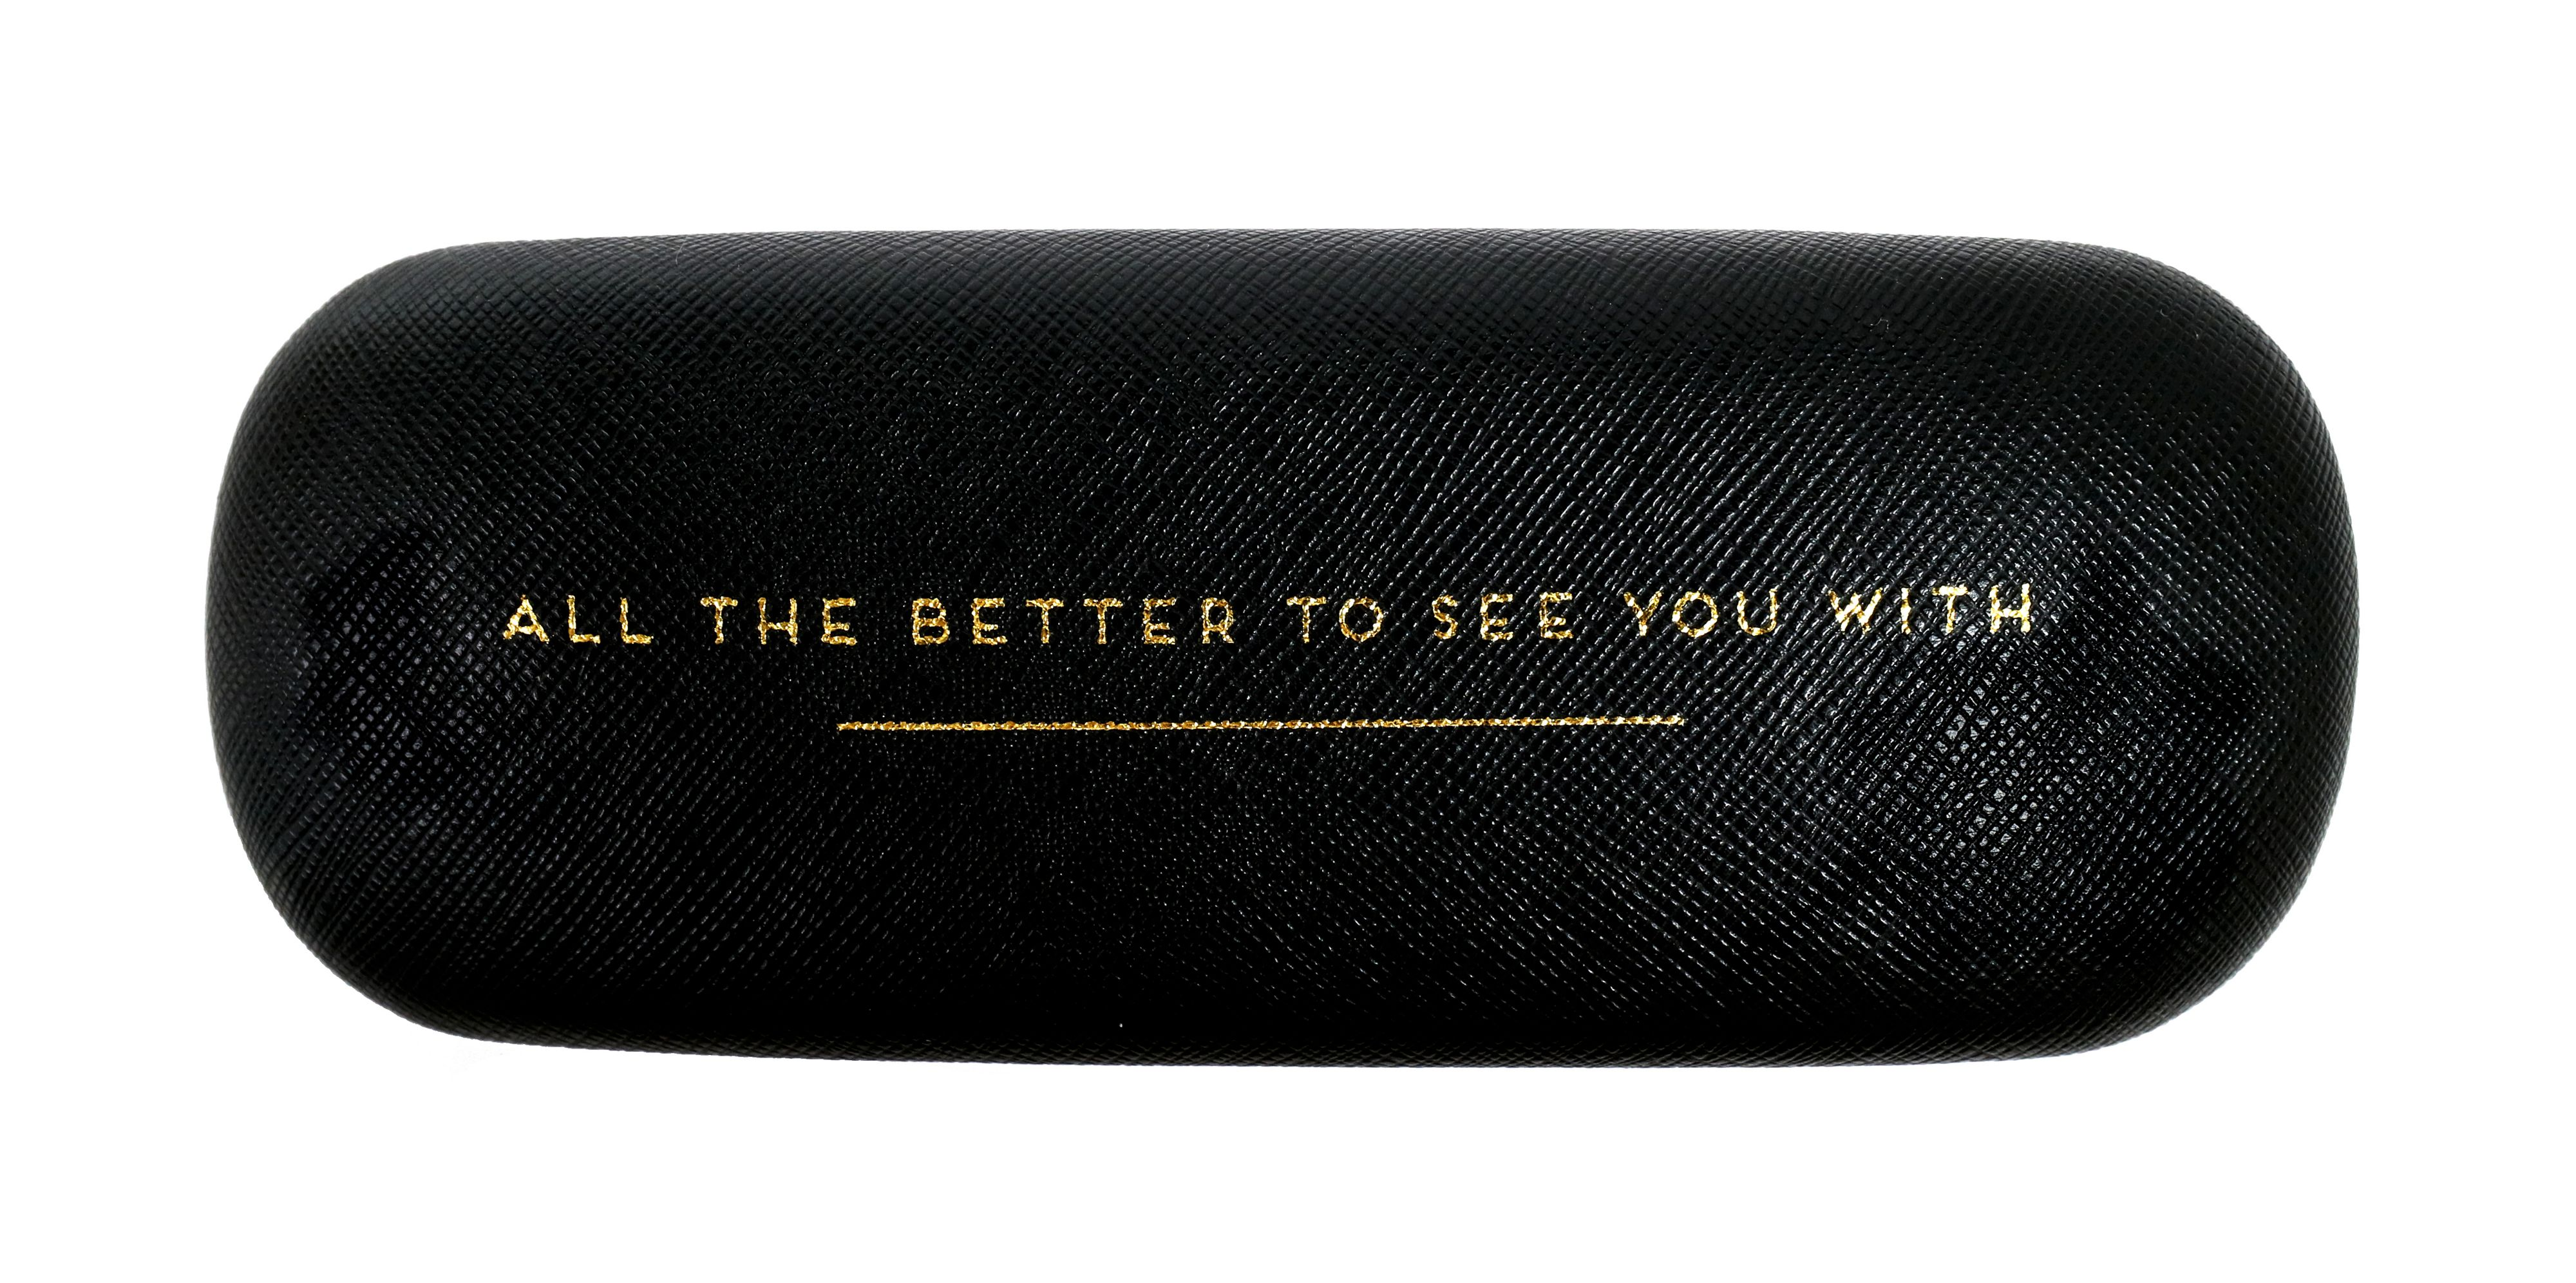 Alice Scott Hard Glasses Case All The Better To See You With, Black